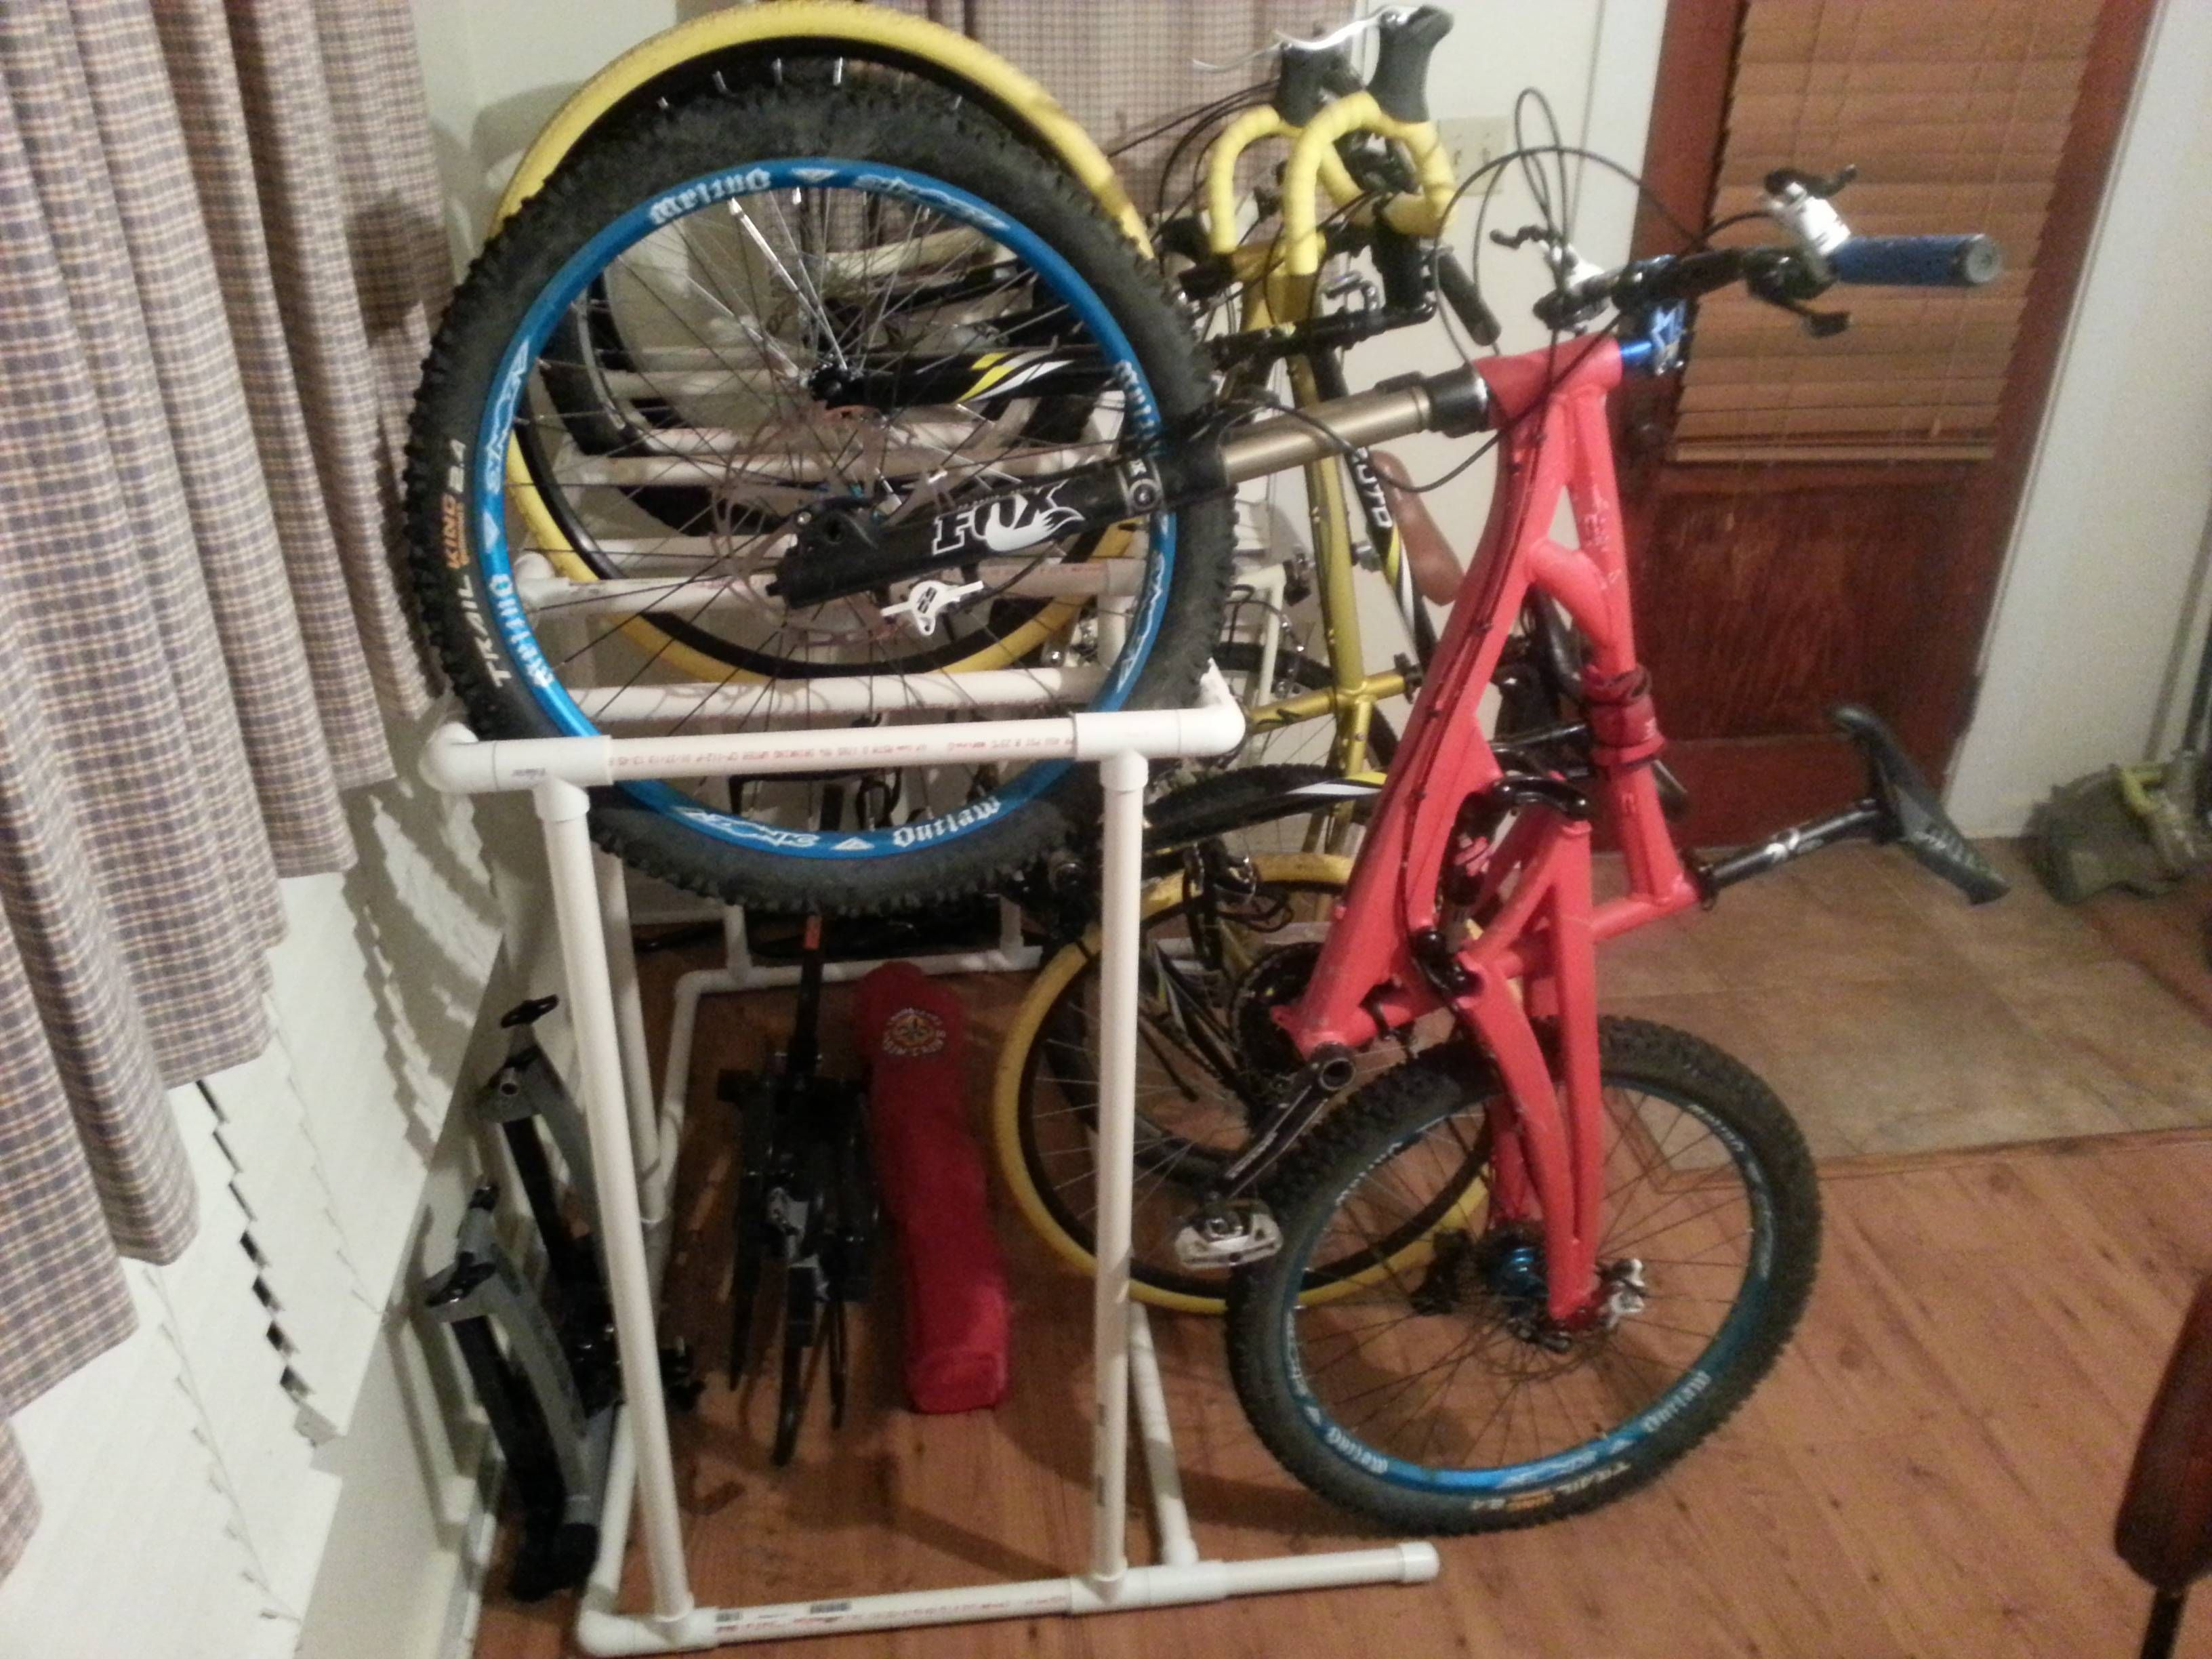 Pvc Bike Storage Rack Vertical Bike Storage Bike Storage